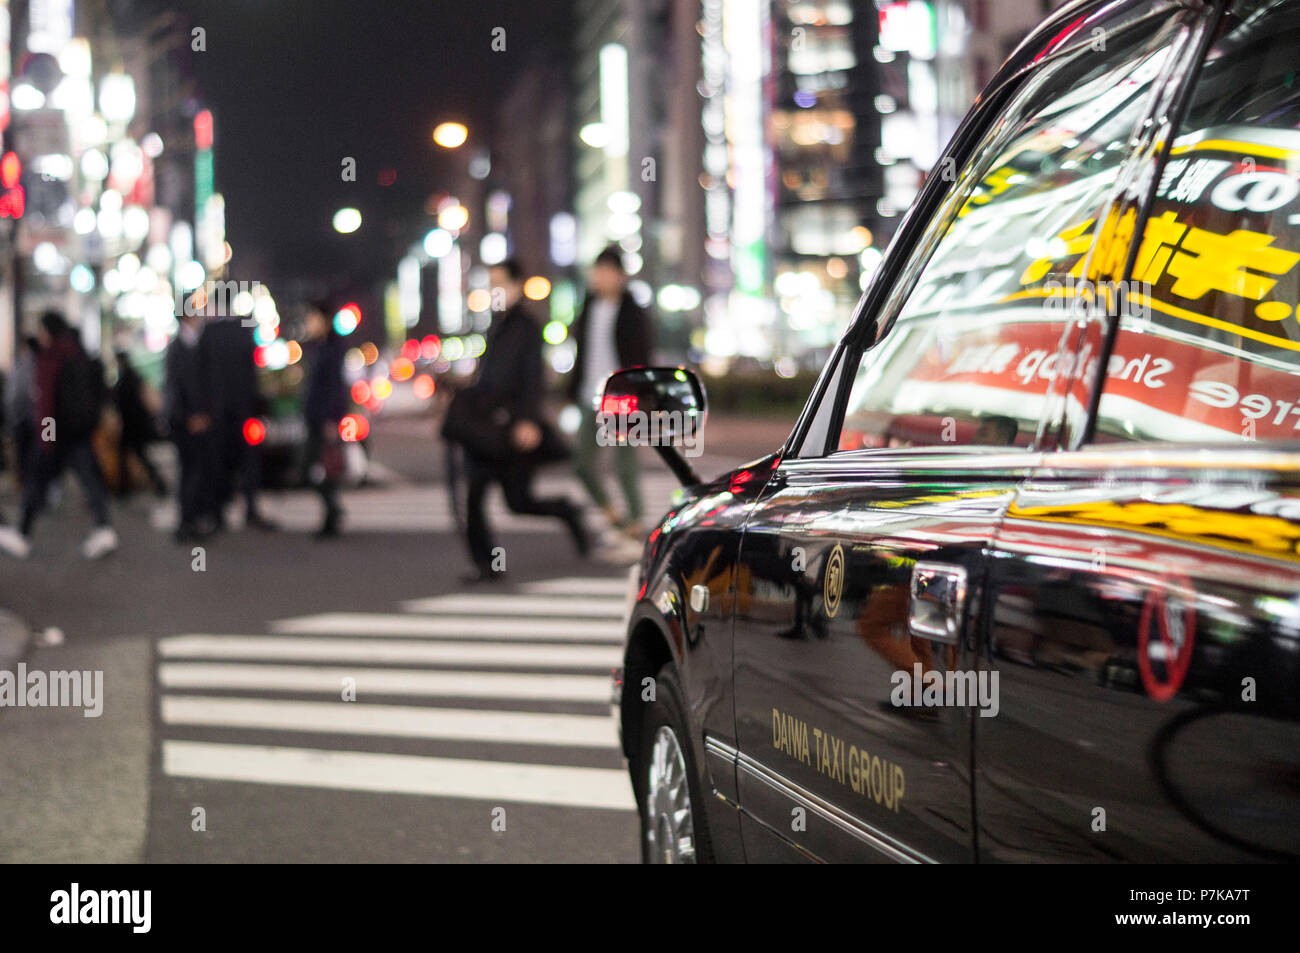 A taxi at Tokyo's nightlife - Stock Image